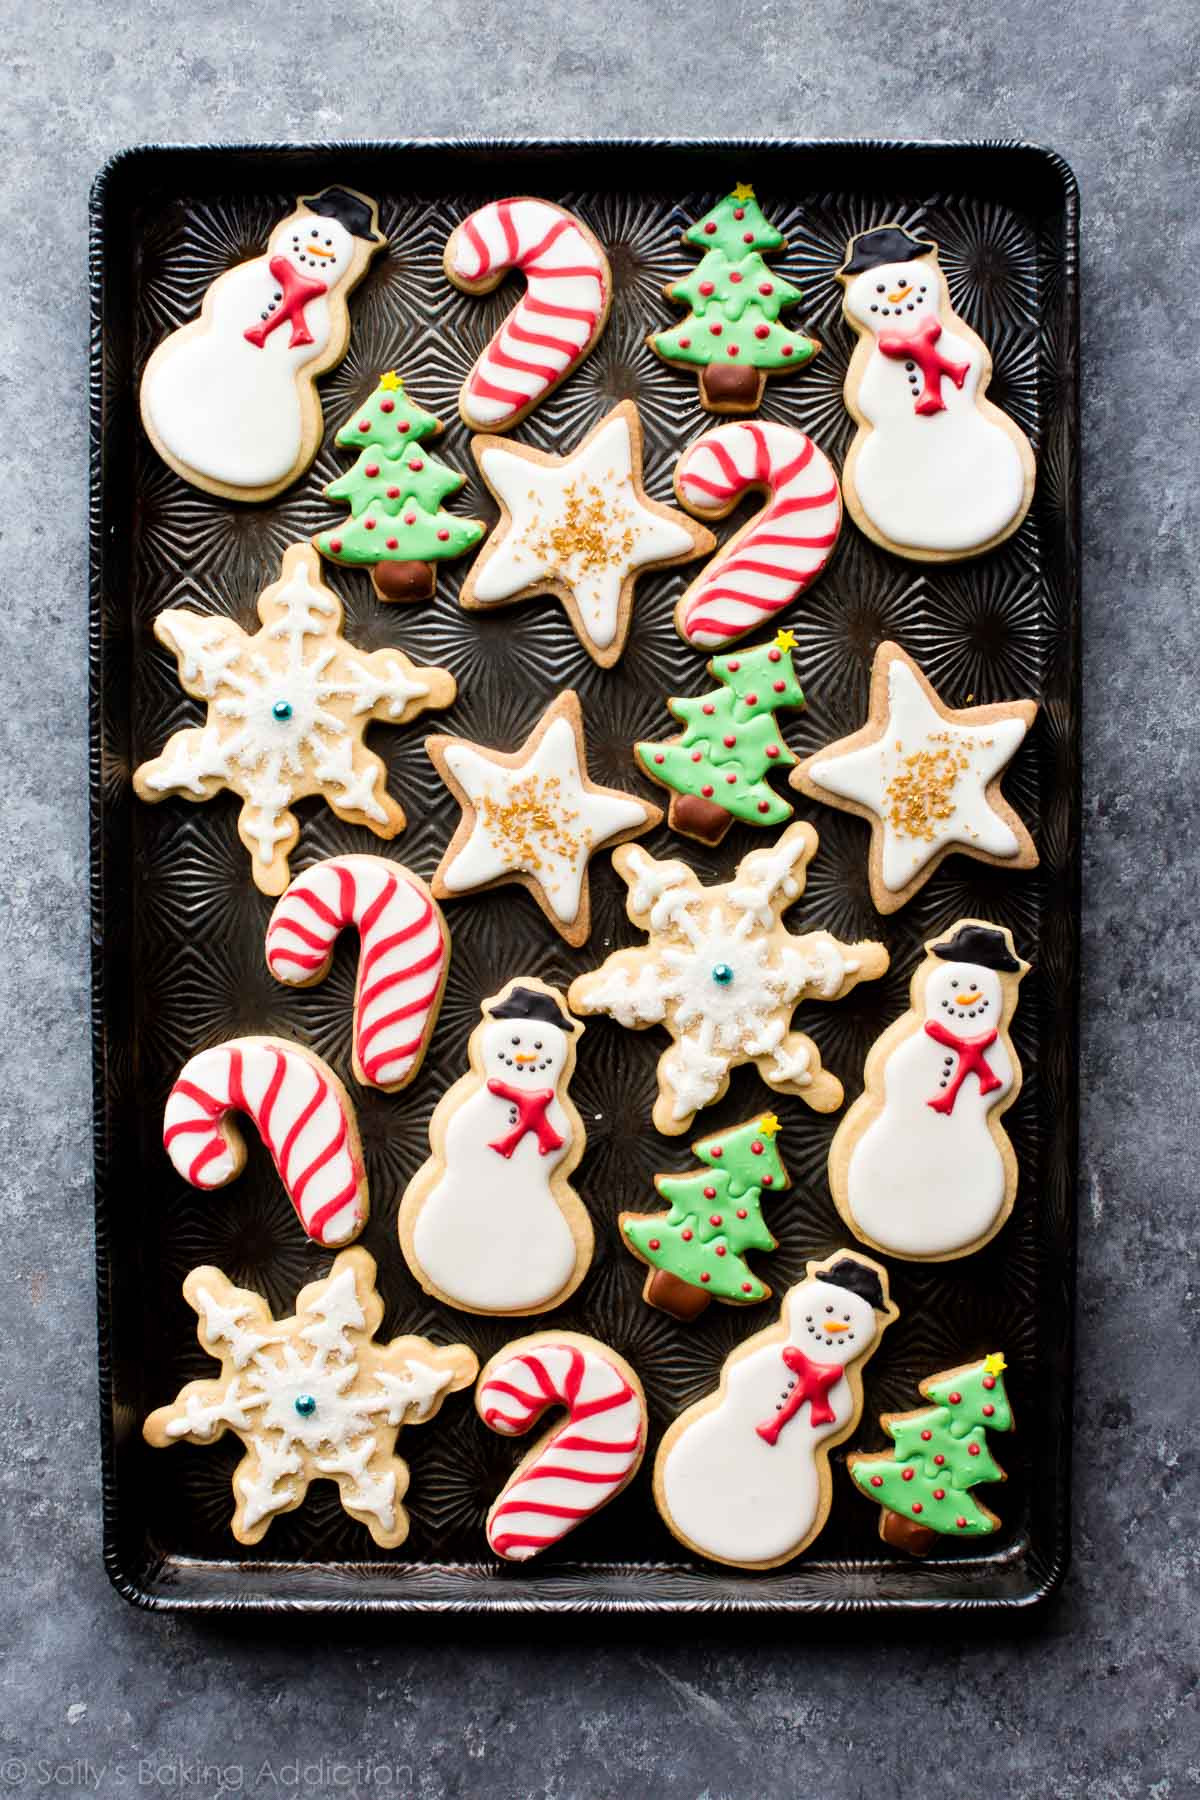 Christmas Cookies Decorated  1 Sugar Cookie Dough 5 Ways to Decorate Sallys Baking